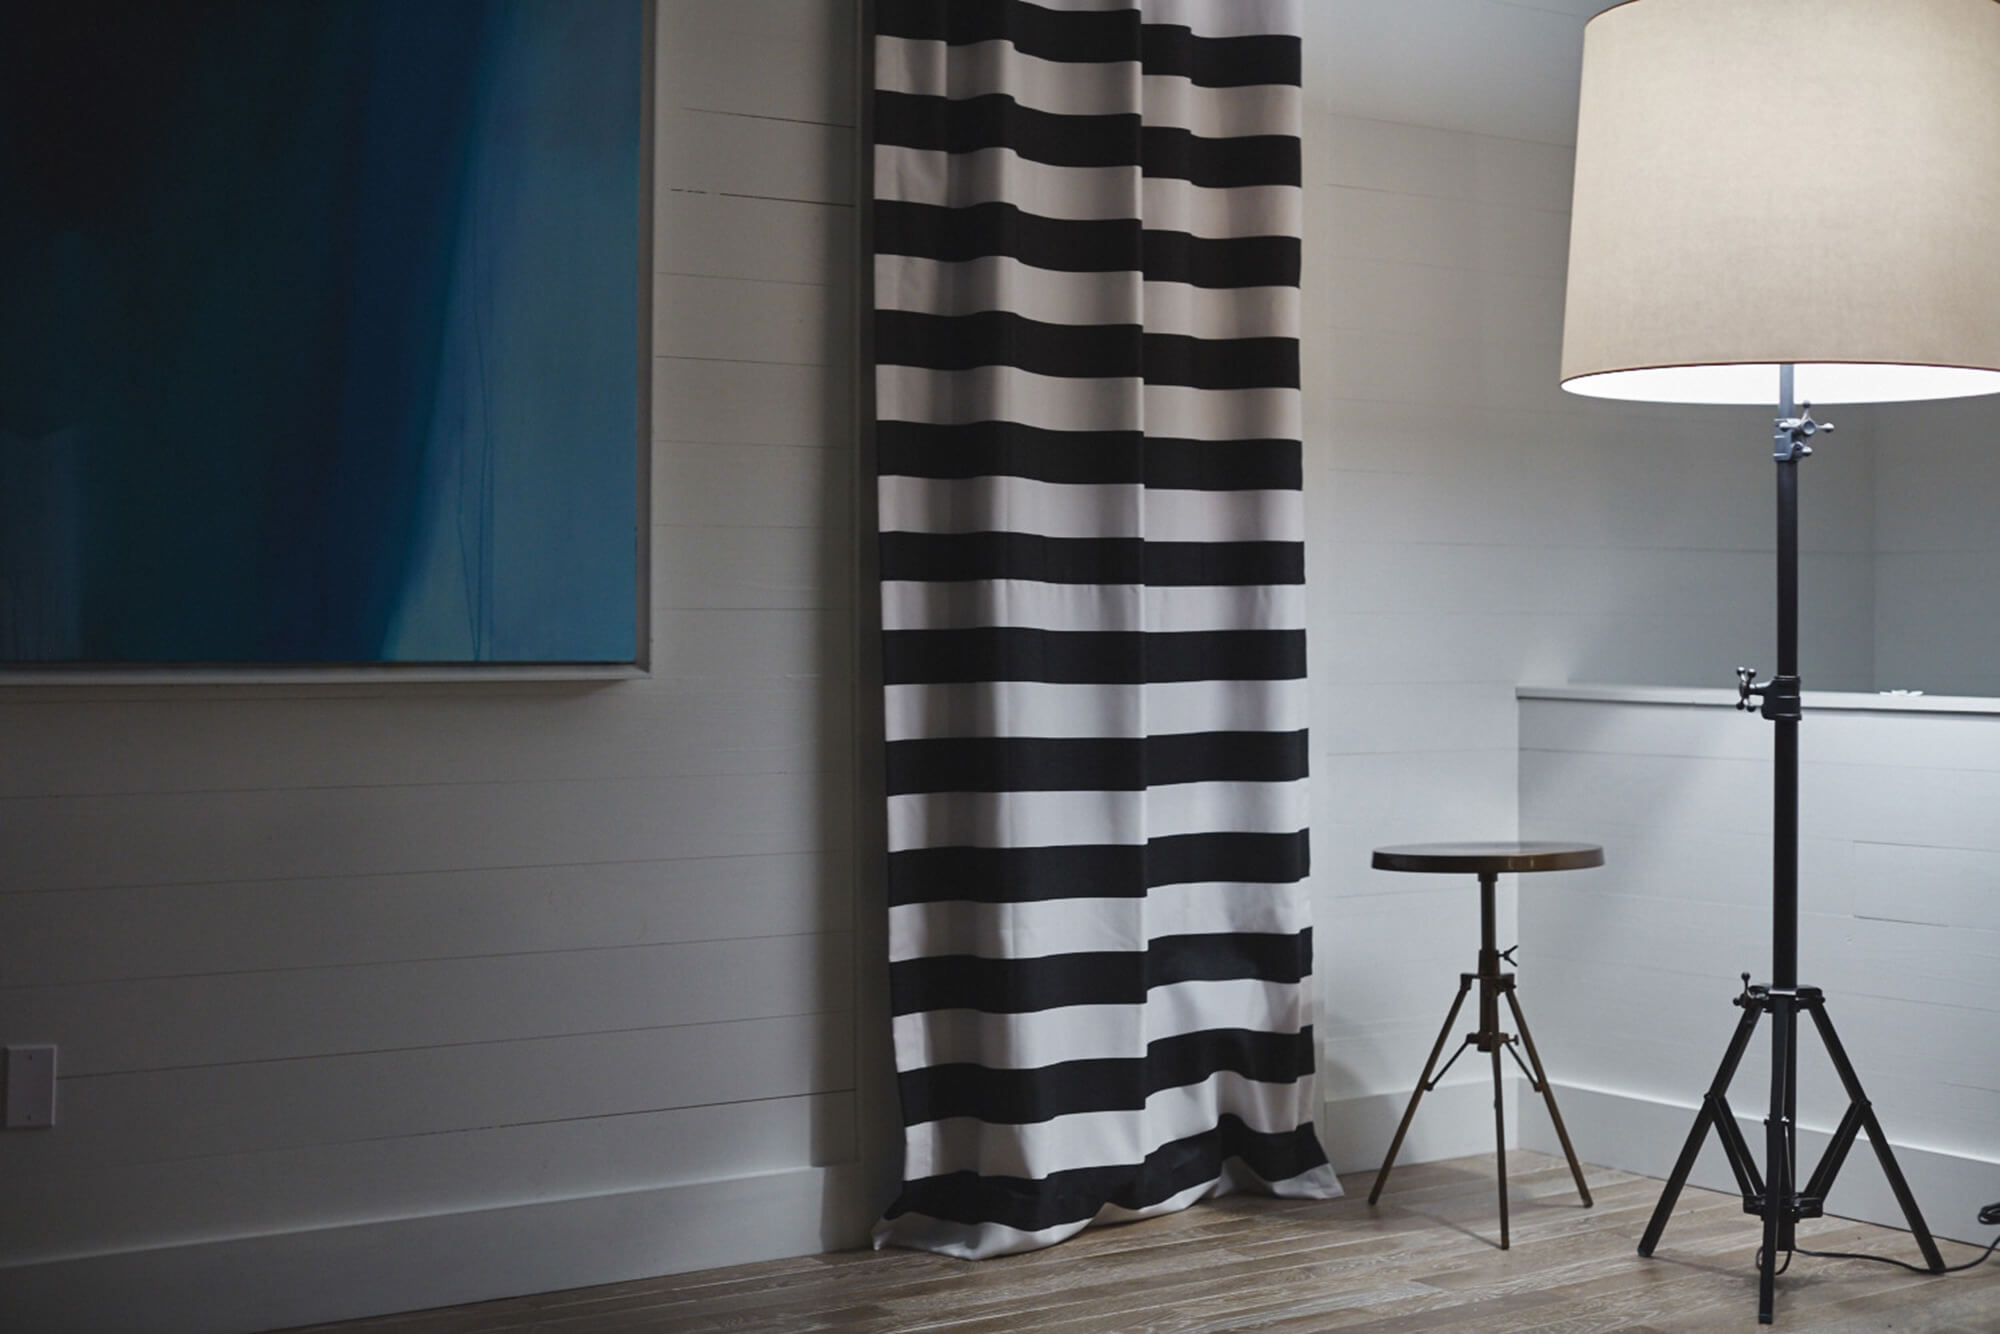 Drapery in living room makes statement with bold black and white stripes